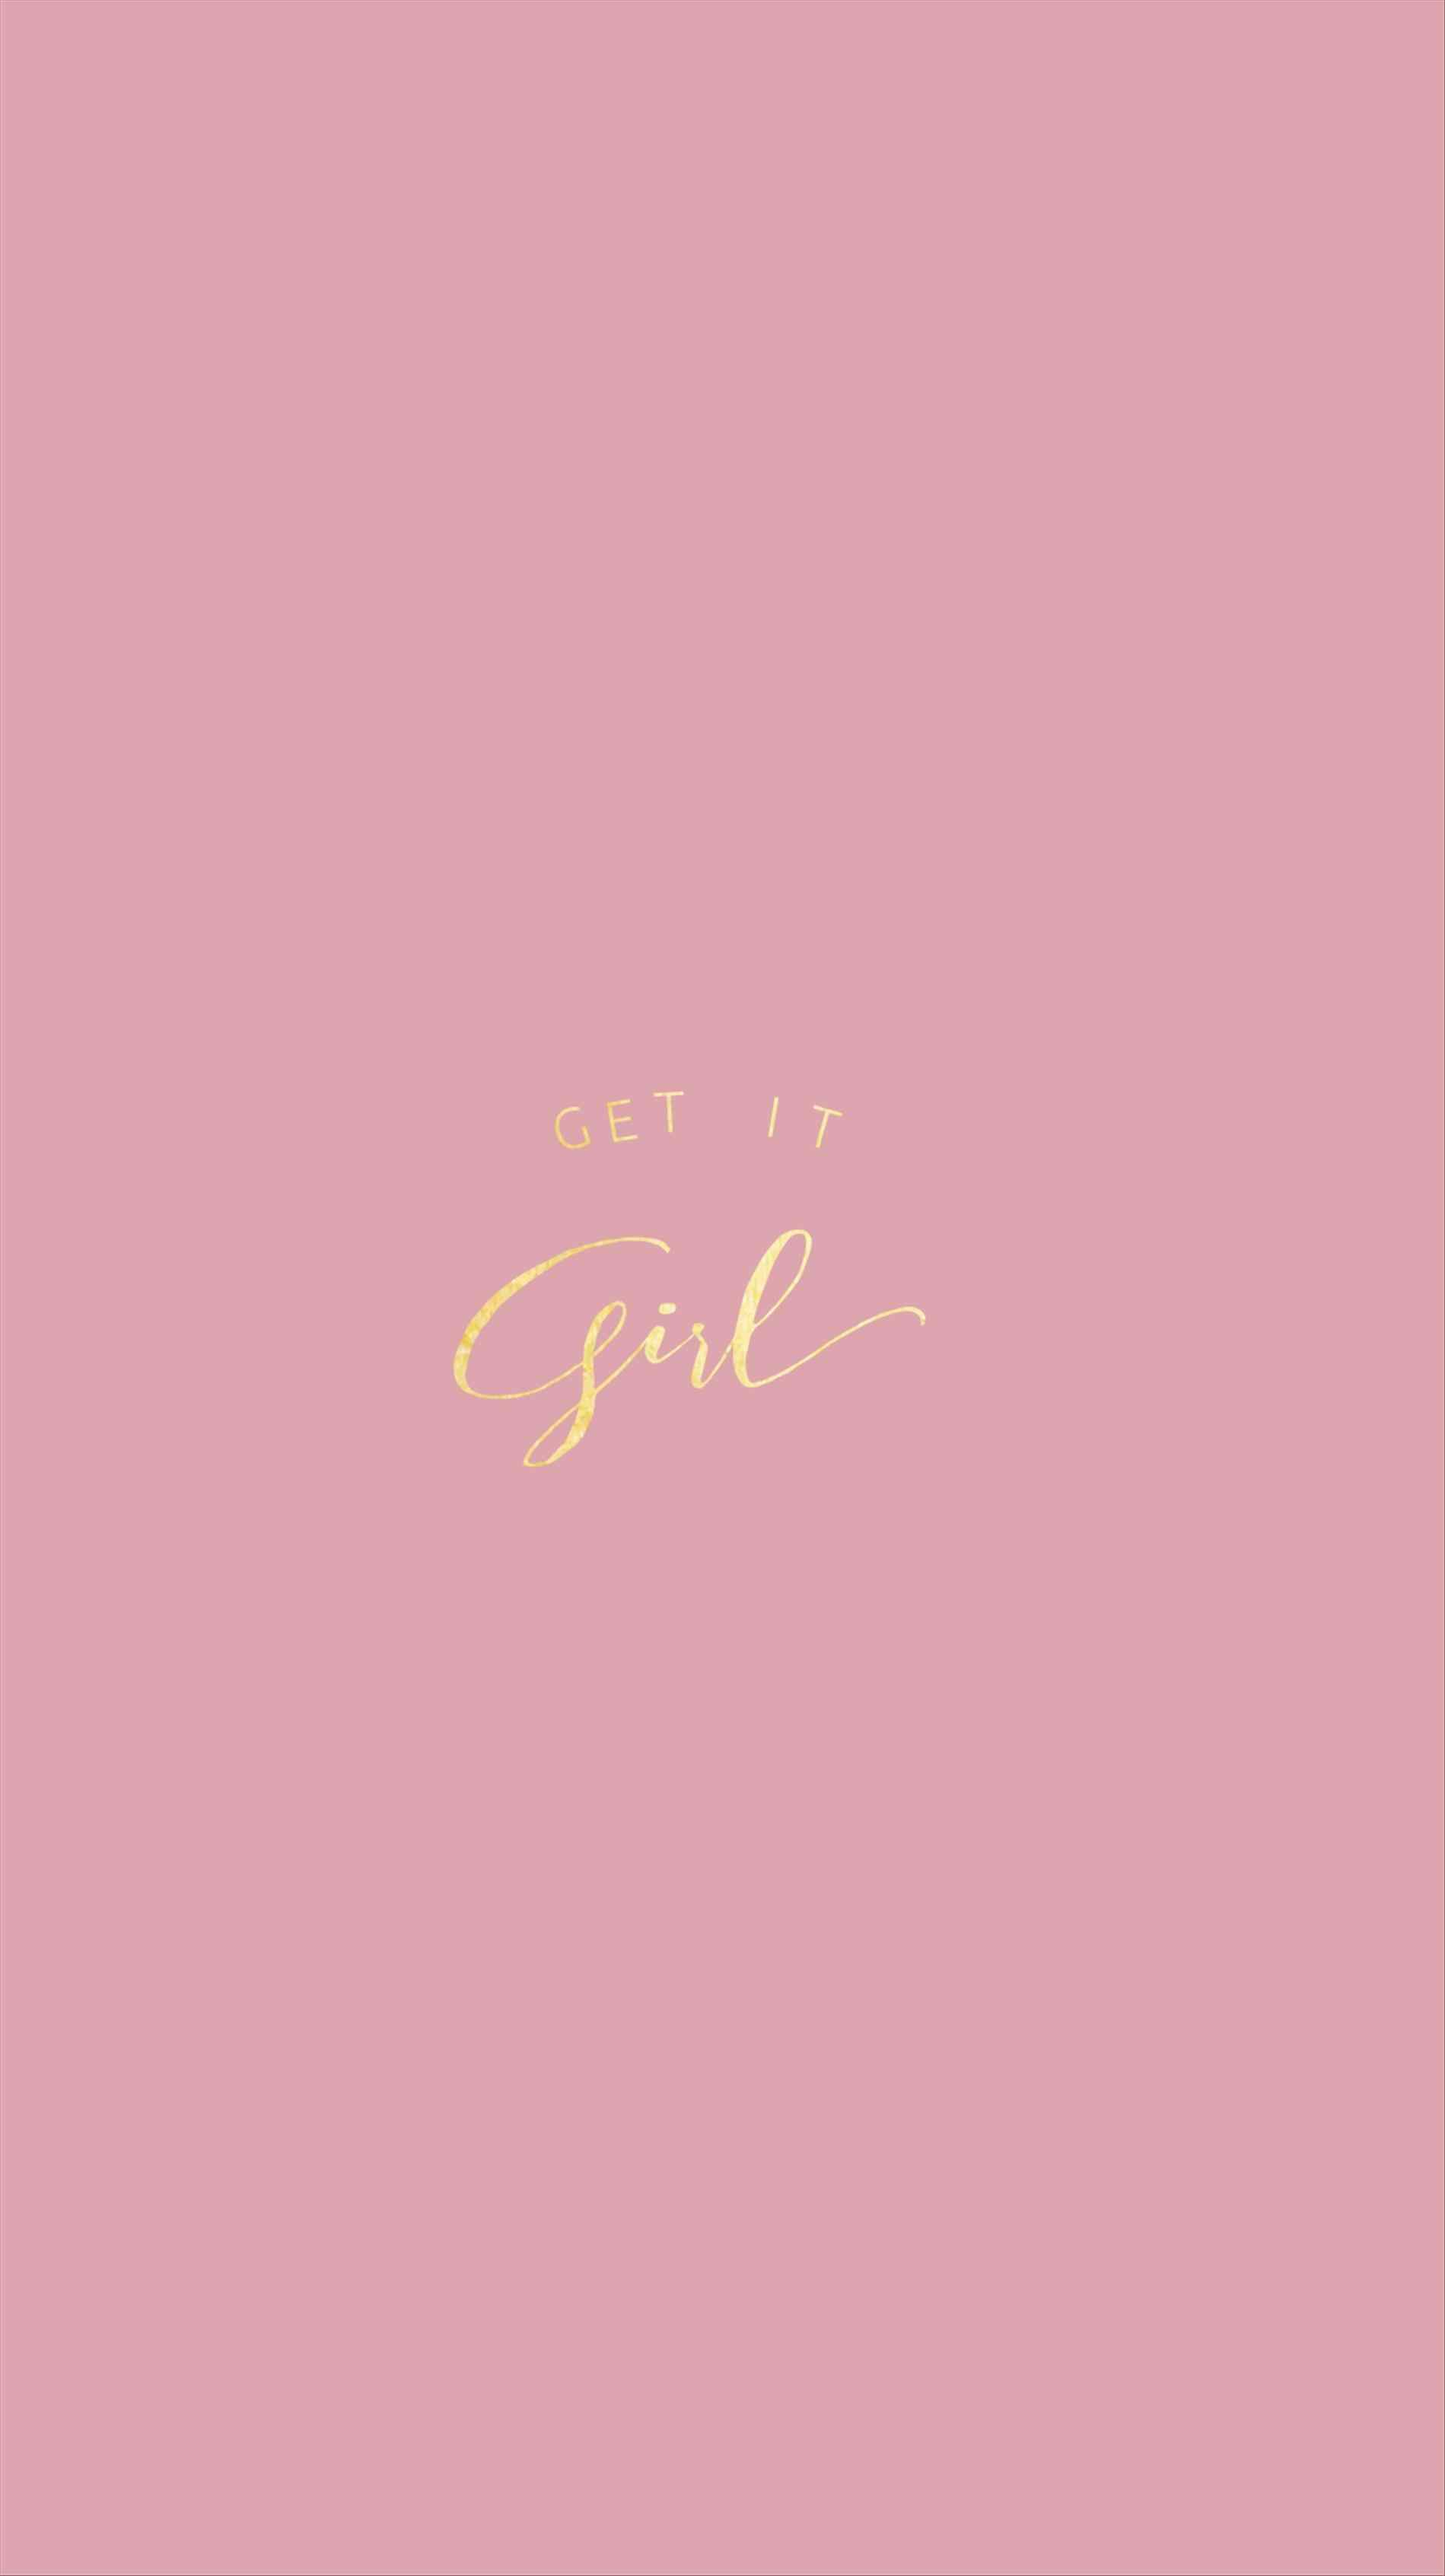 Girly Wallpapers With Quotes Rose Gold Wallpaper Iphone 6977 Hd Wallpaper Backgrounds Download